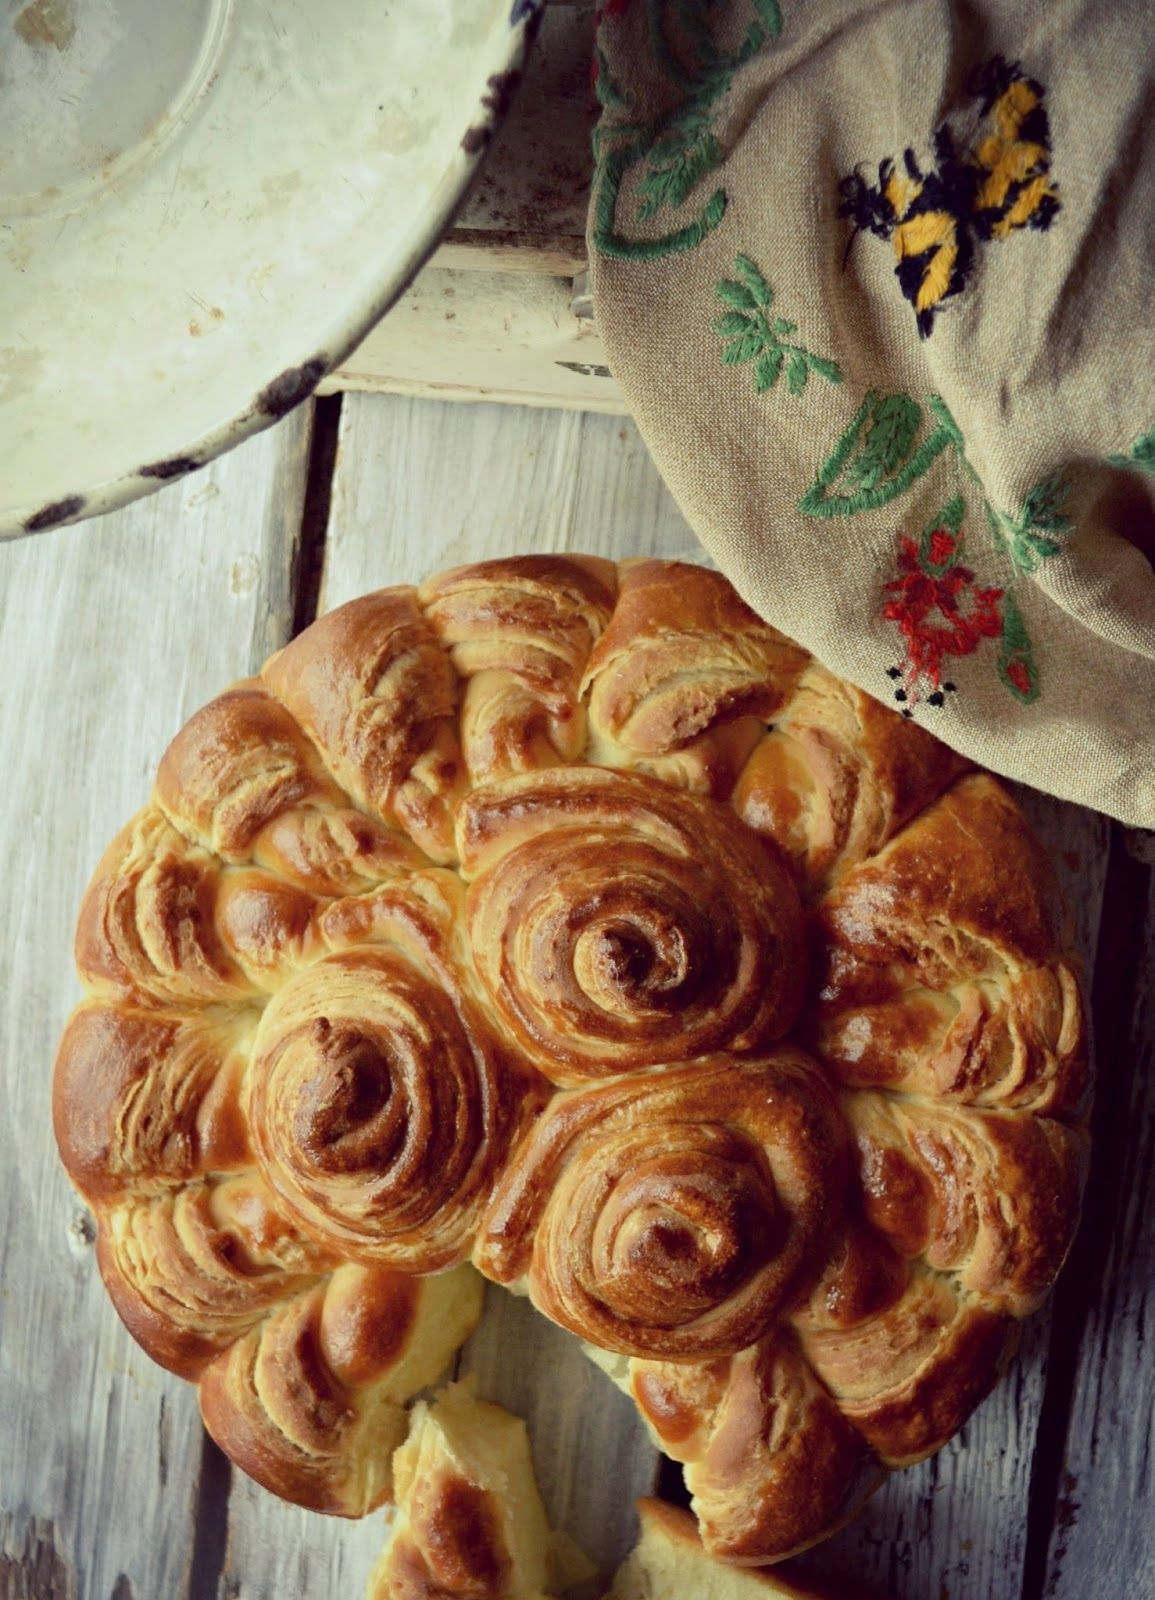 Serbian bread - looks extremely soft and chewy! A Kingdom for a cake: Daring Baker's Challenge